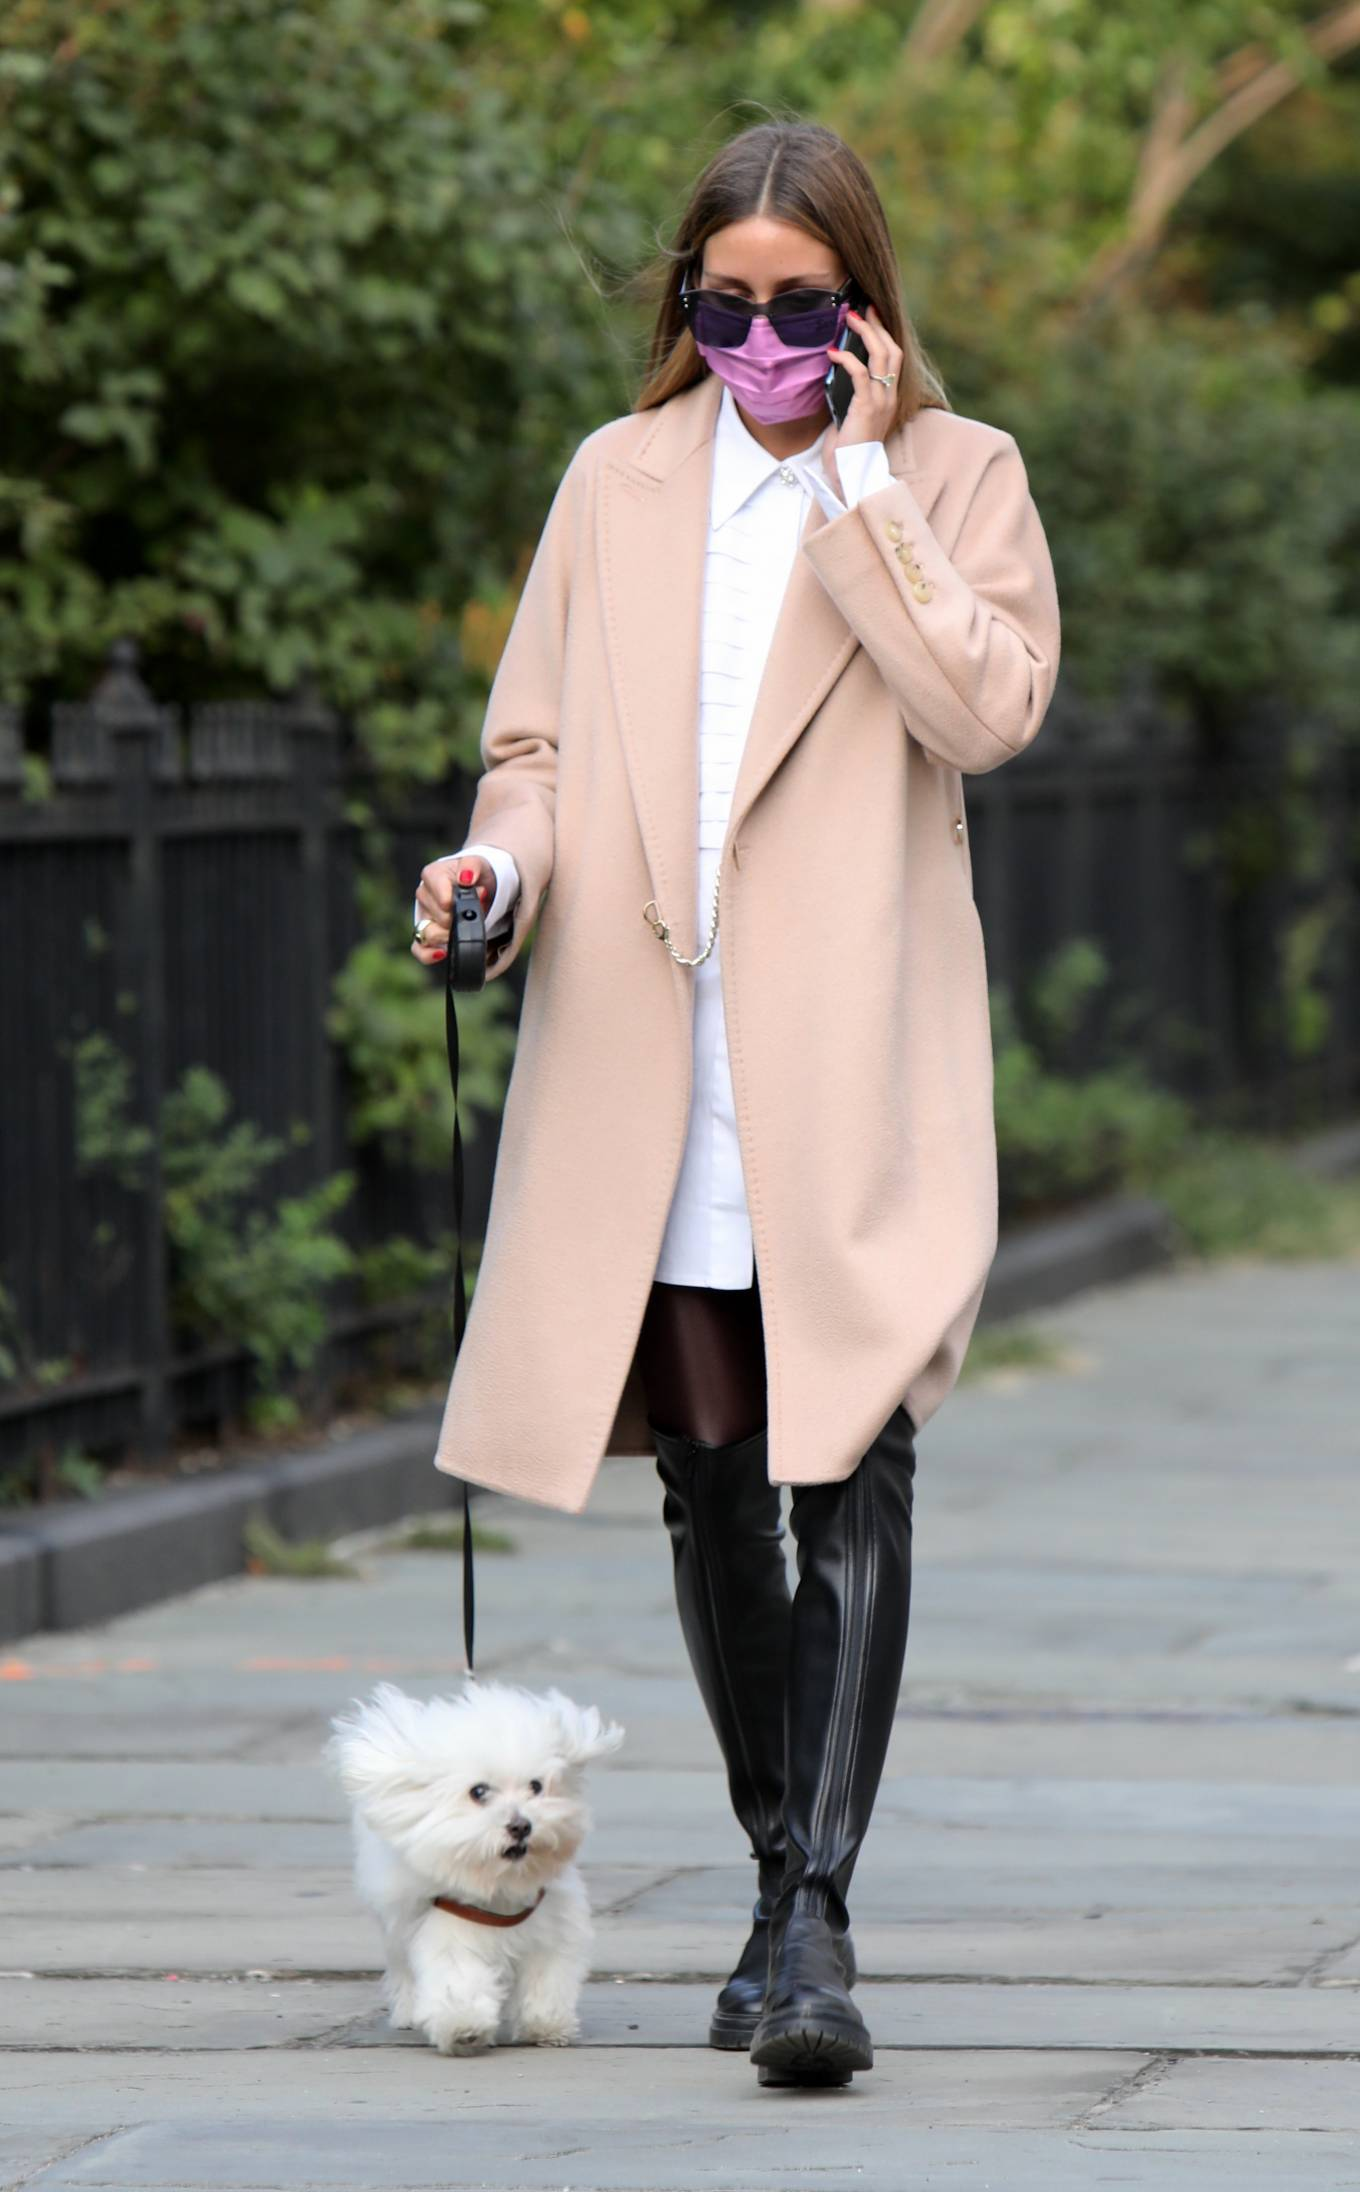 Olivia Palermo - Wearing a white short dress under a coat while out for a walk in Manhattan